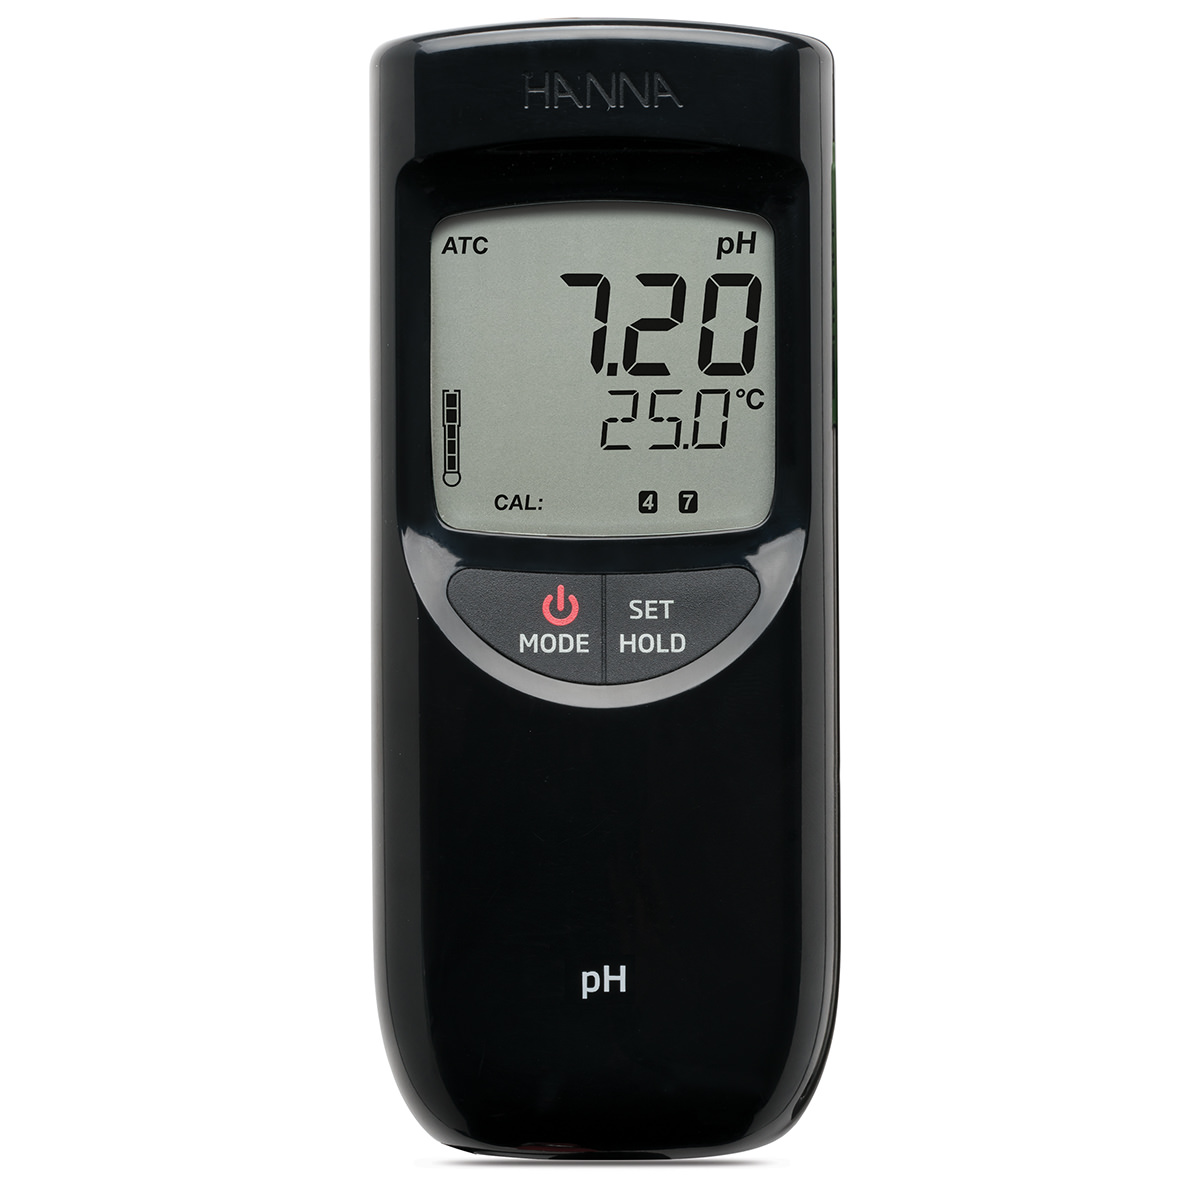 Waterproof Portable pH/Temperature Meter - HI991001